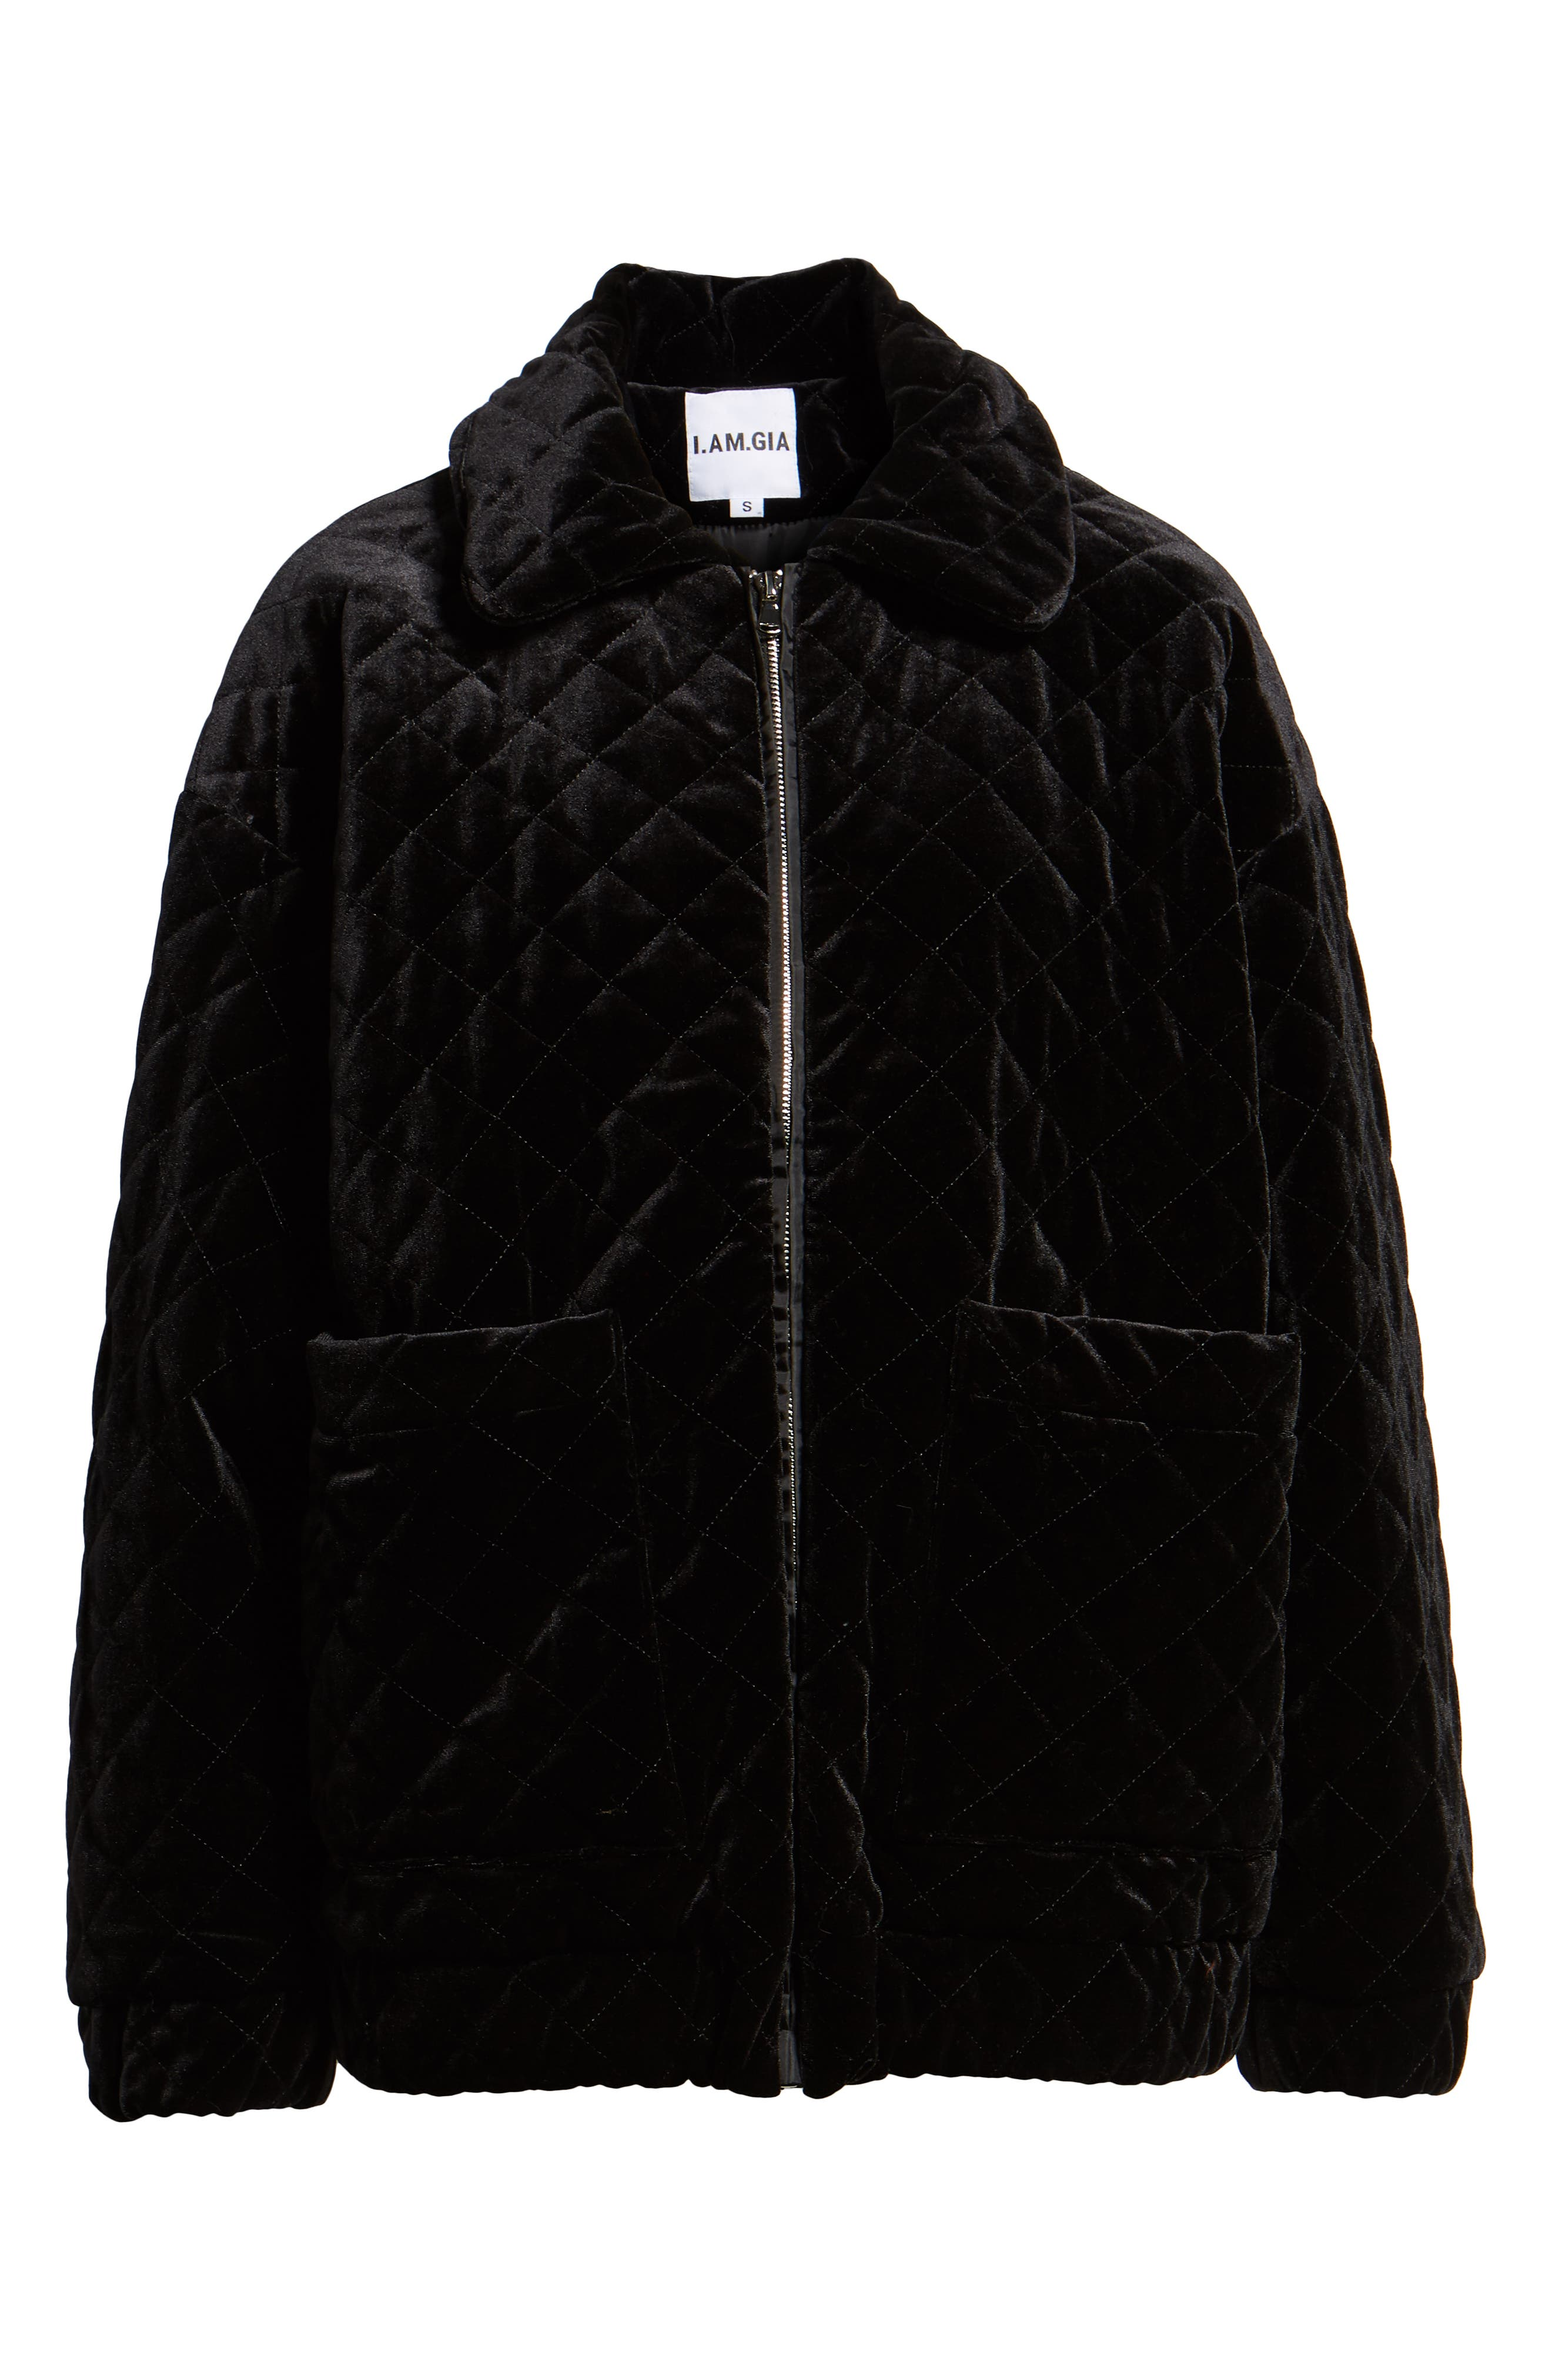 I.AM.GIA Contraband Quilted Velvet Jacket,                             Alternate thumbnail 6, color,                             BLACK